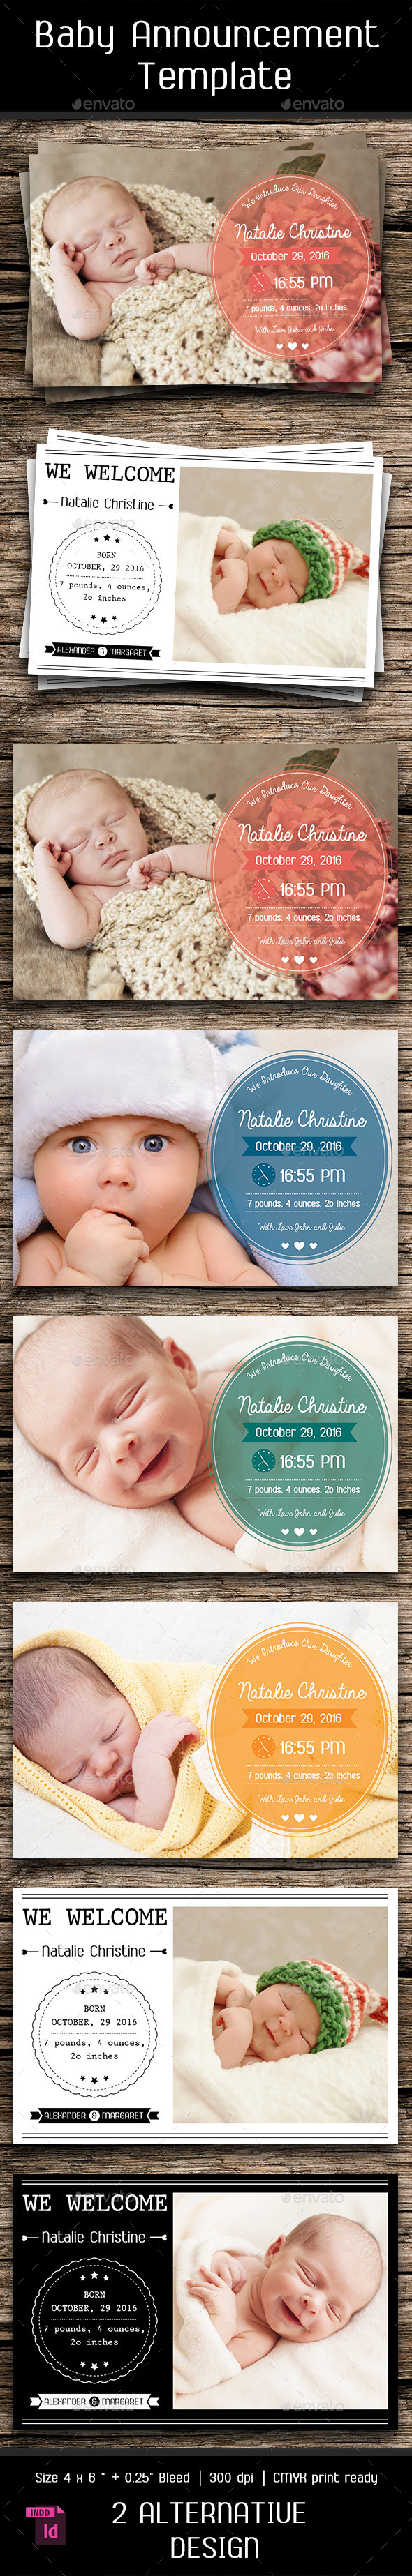 Baby Announcement Template - Vol.5 - Cards & Invites Print Templates